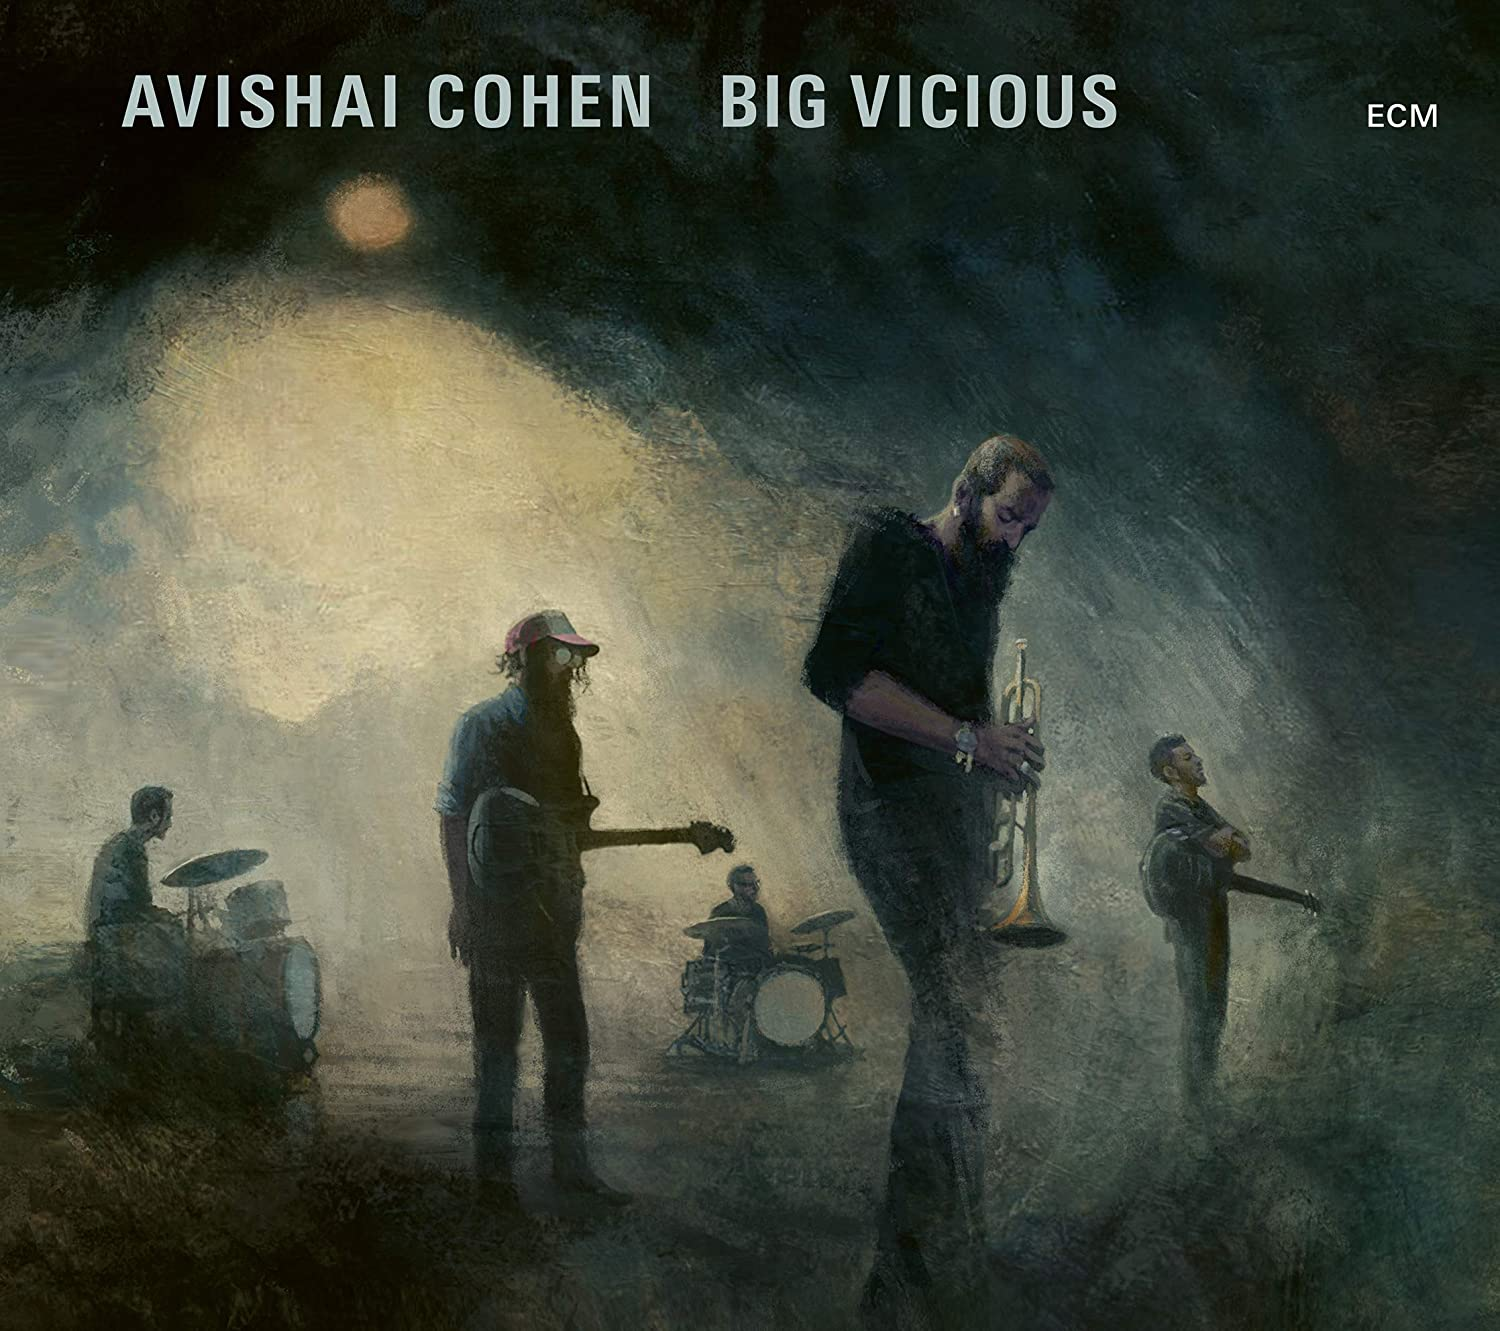 Avishai Cohen/Big Vicious - Big Vicious [LP] - Amazon.com Music